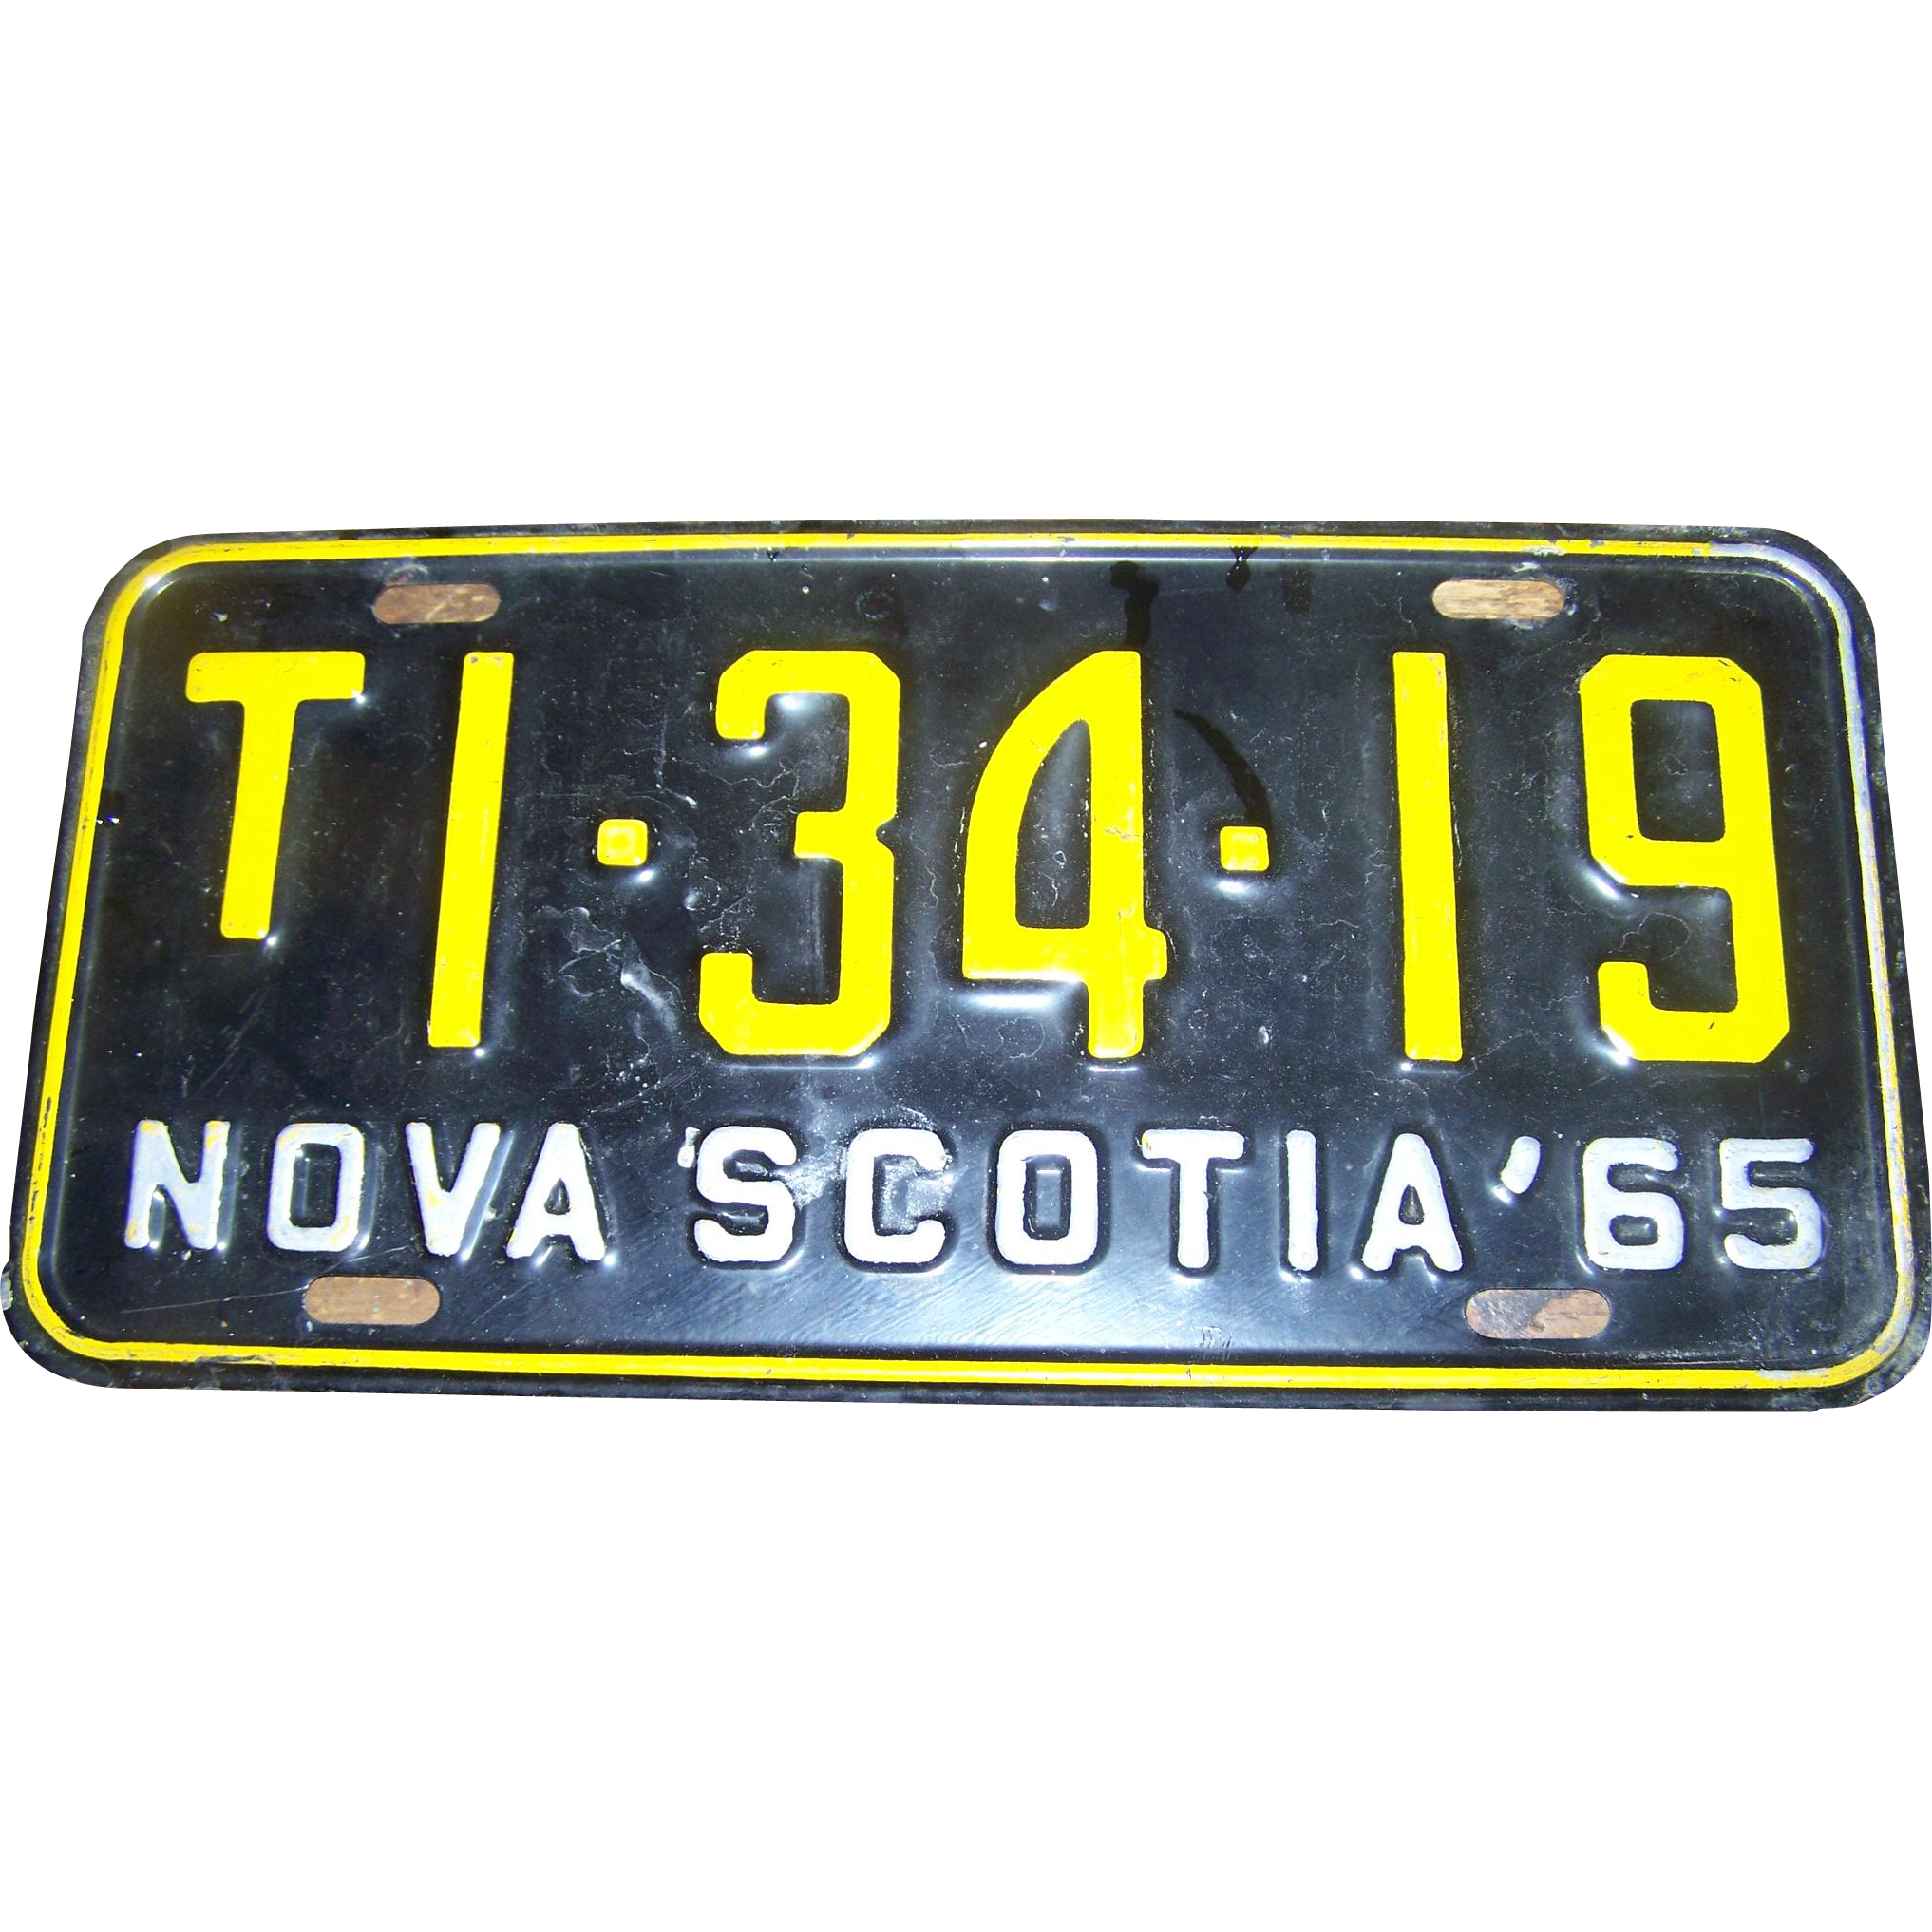 Vintage Nova Scotia License Plate 1965